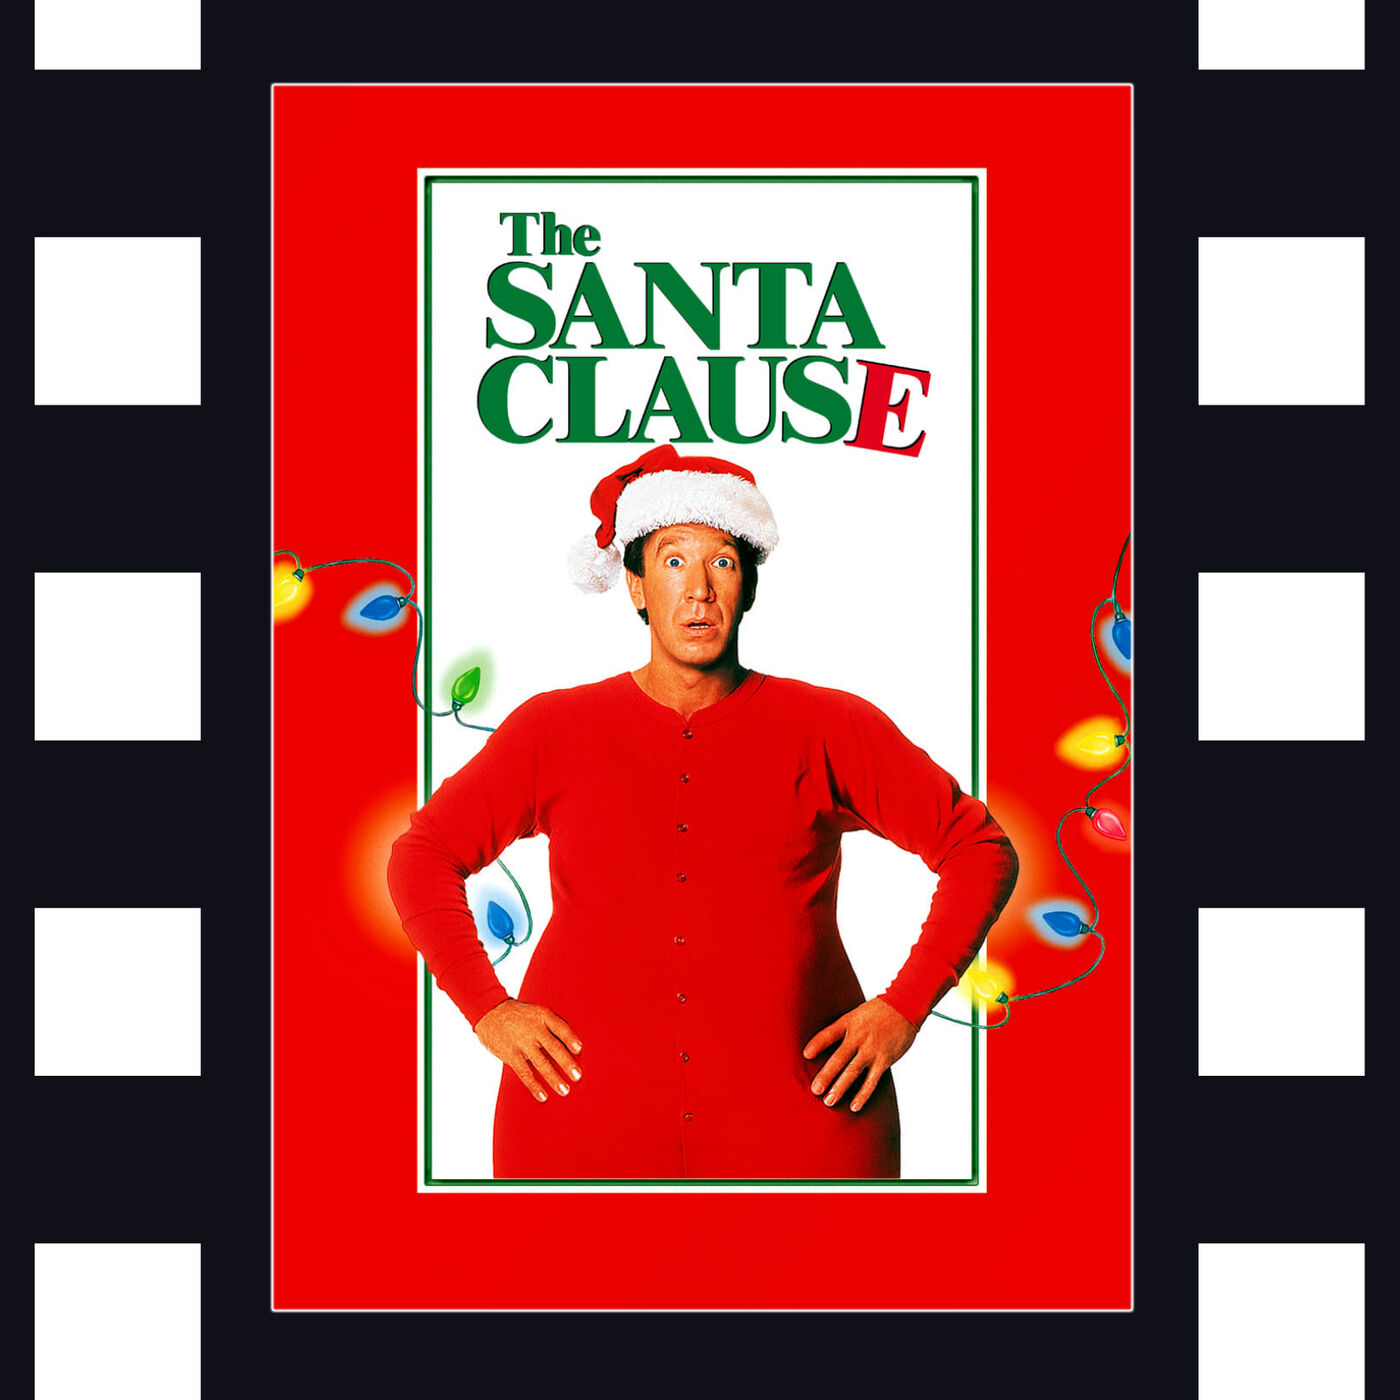 The Santa Clause - My Wife Cheers when Tim Allen Kills Santa